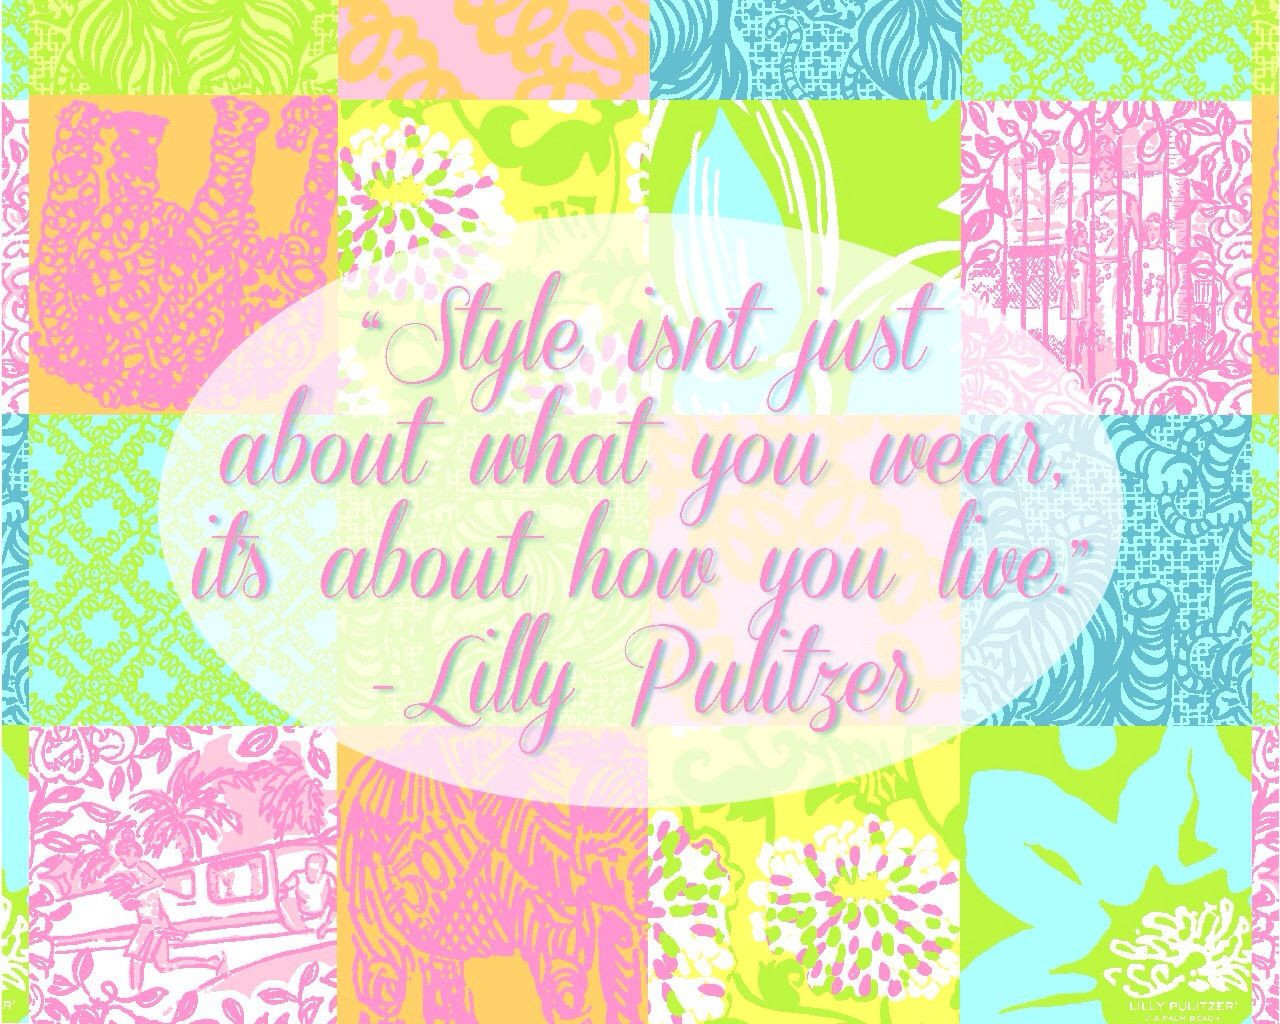 Lilly Pulitzer Quotes Style Isn't Just About What You Wear It's About How You Live